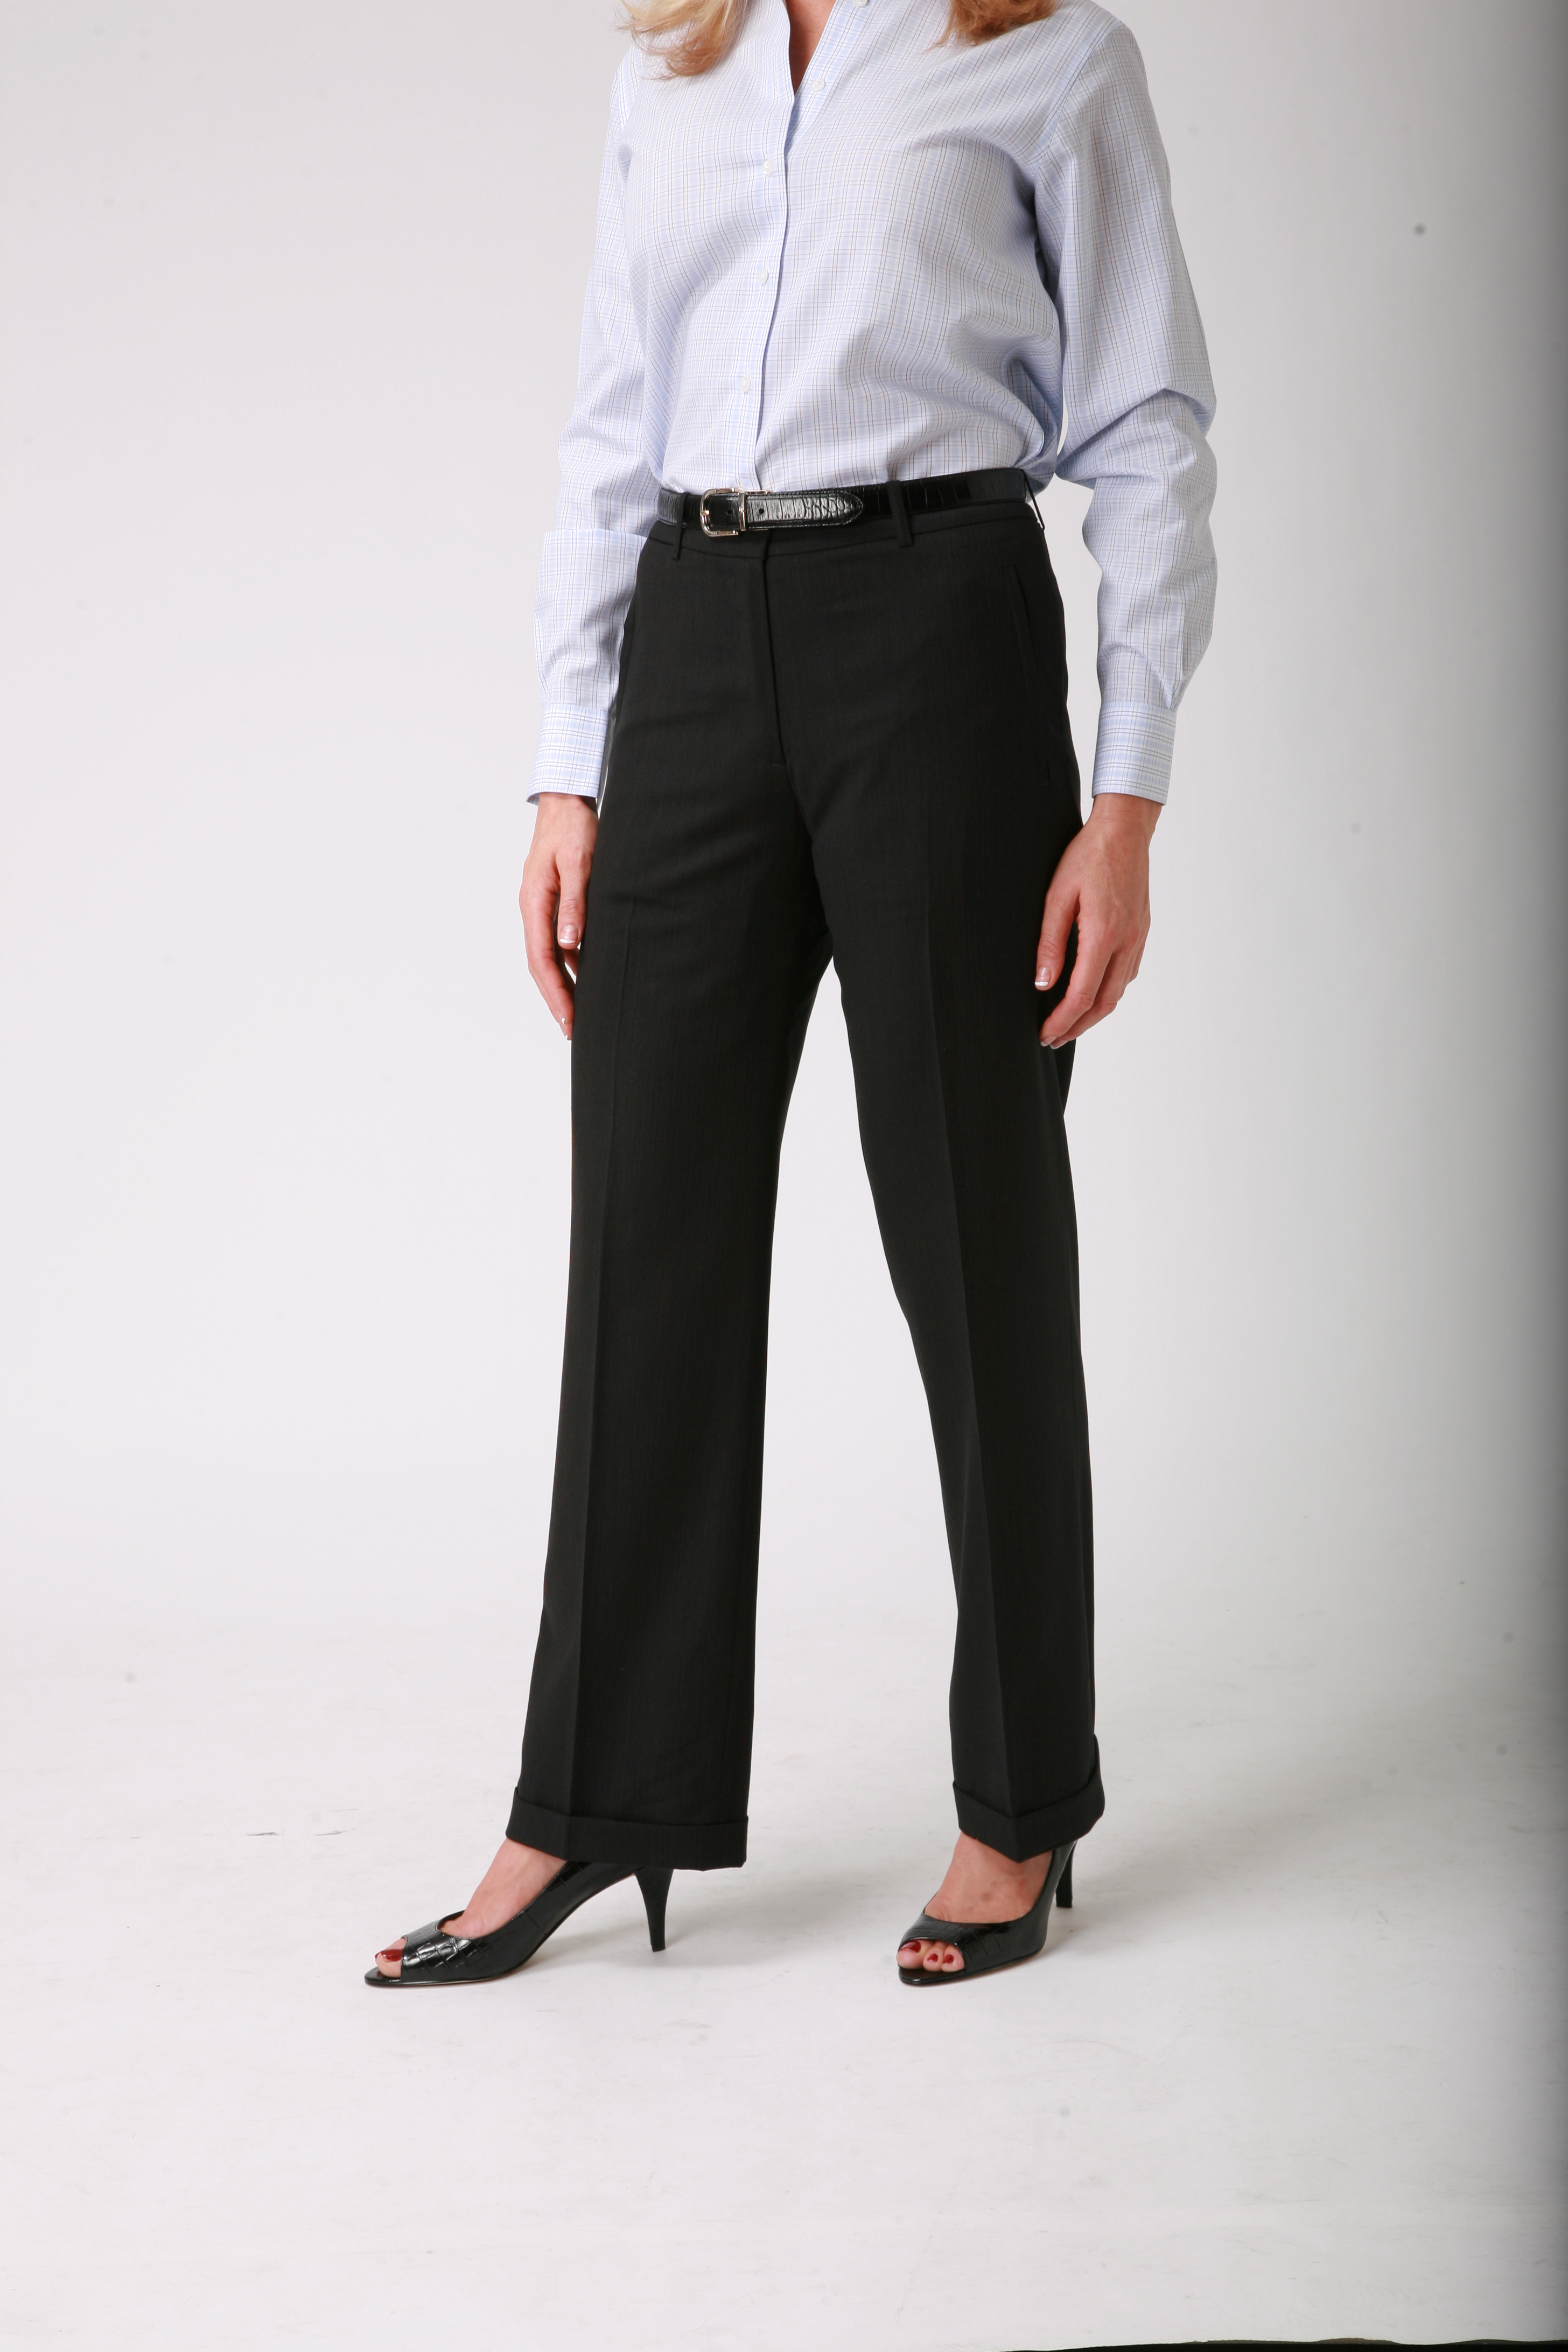 Women's Black Wool Pants : Womens Dress Pants : Pencil ...